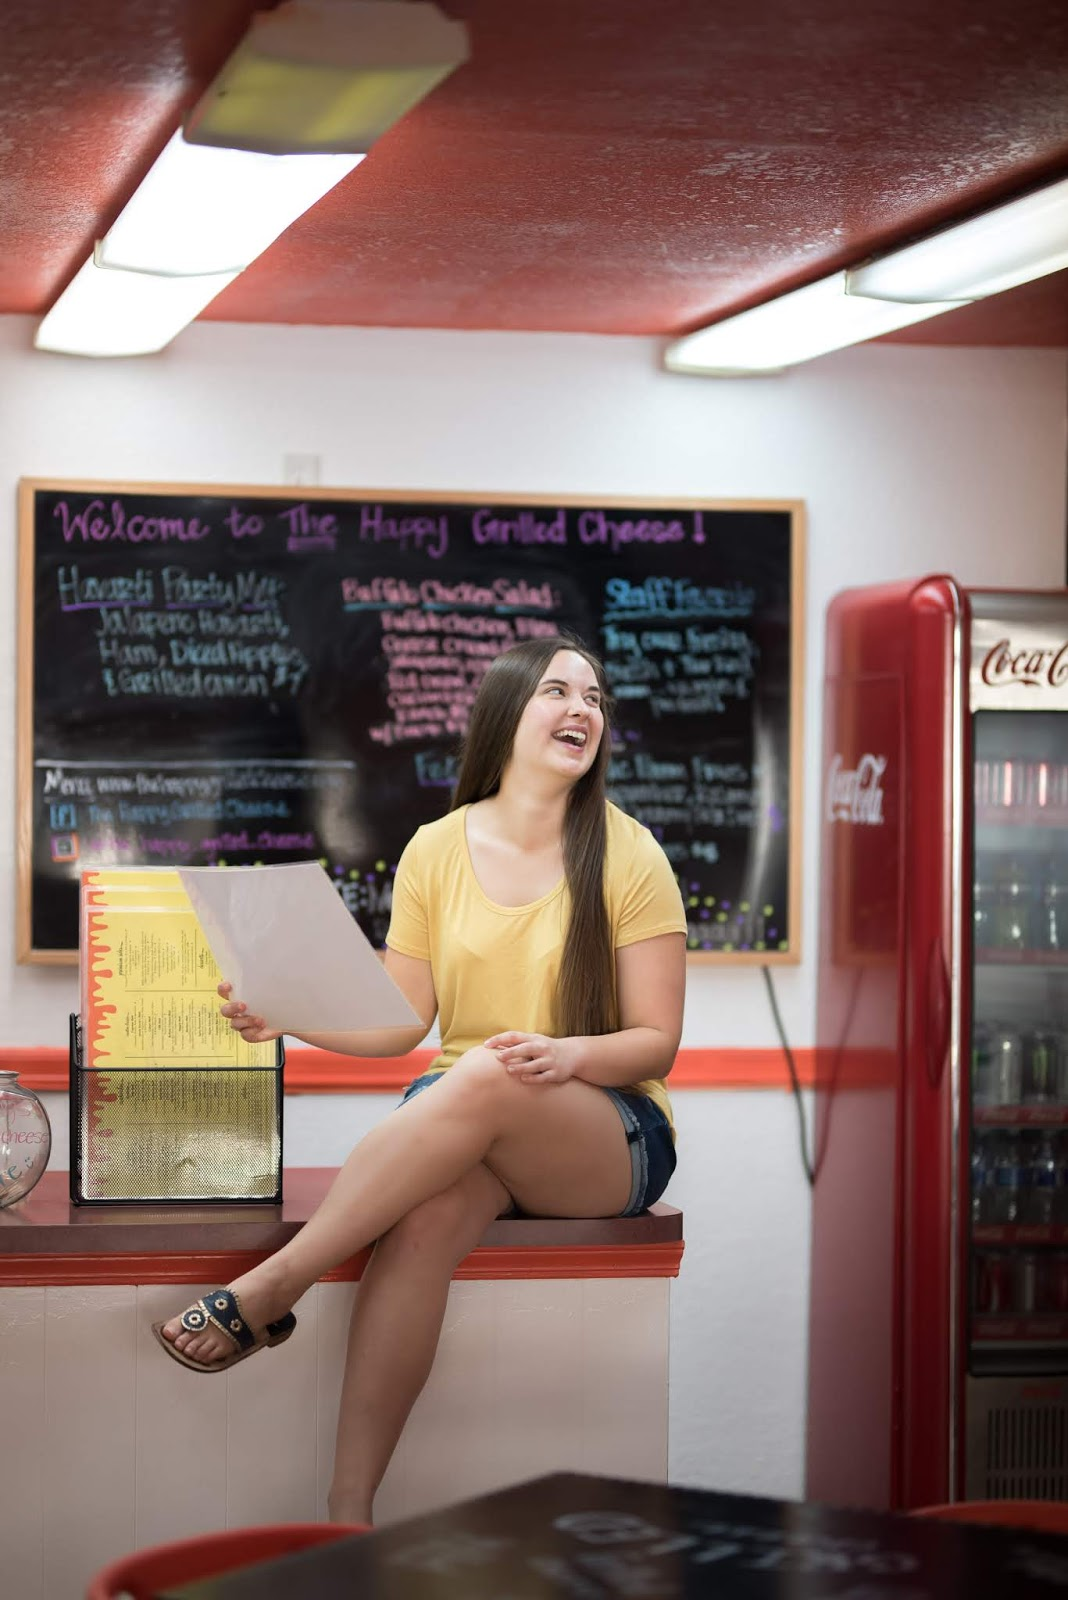 Brunette girl holding menu at The Happy Grilled Cheese restaurant in downtown Jacksonville Florida